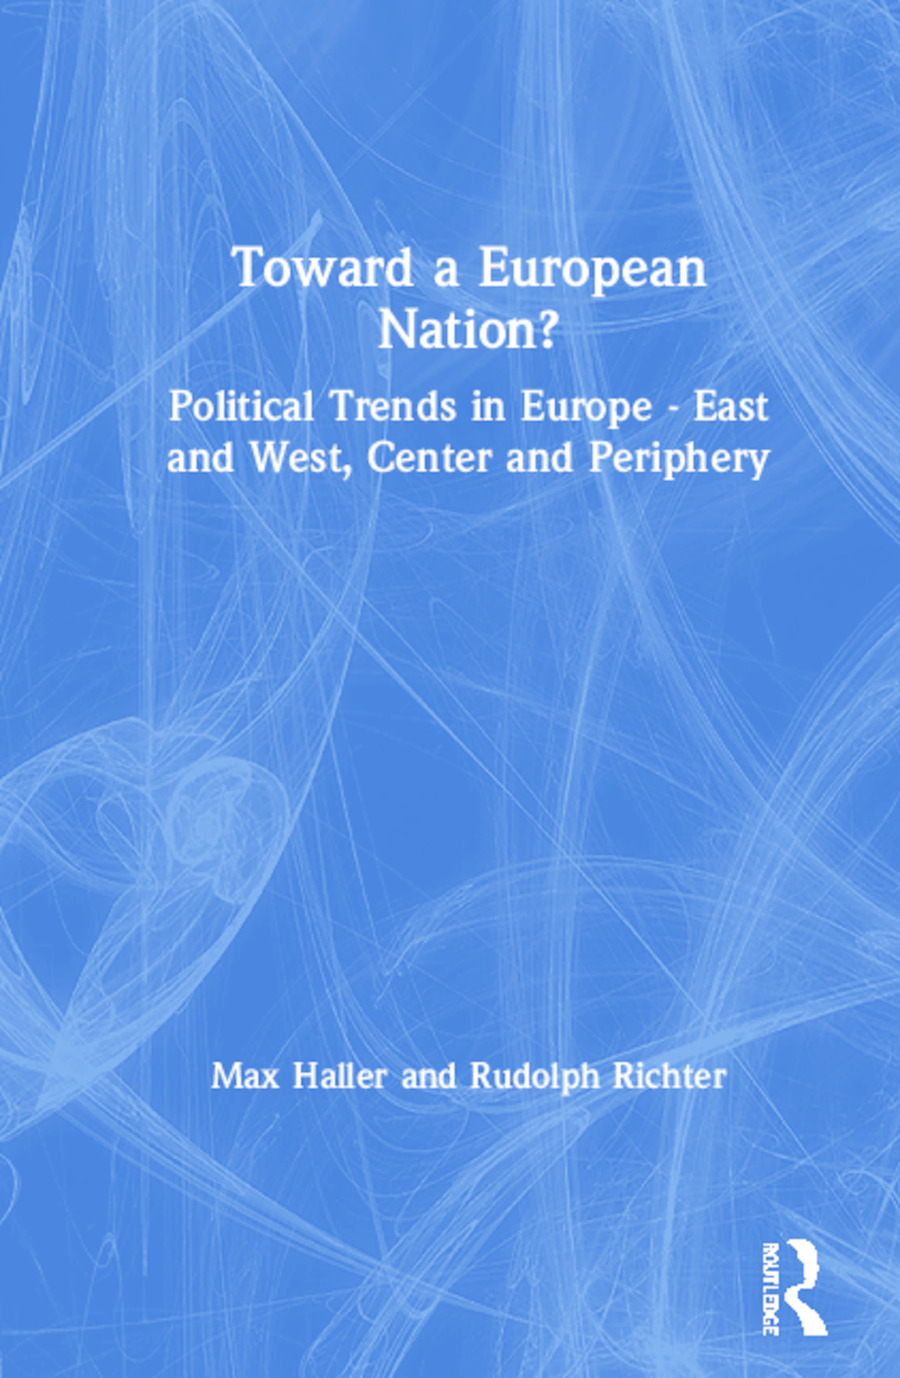 Toward a European Nation?: Political Trends in Europe - East and West, Center and Periphery: Political Trends in Europe - East and West, Center and Periphery book cover